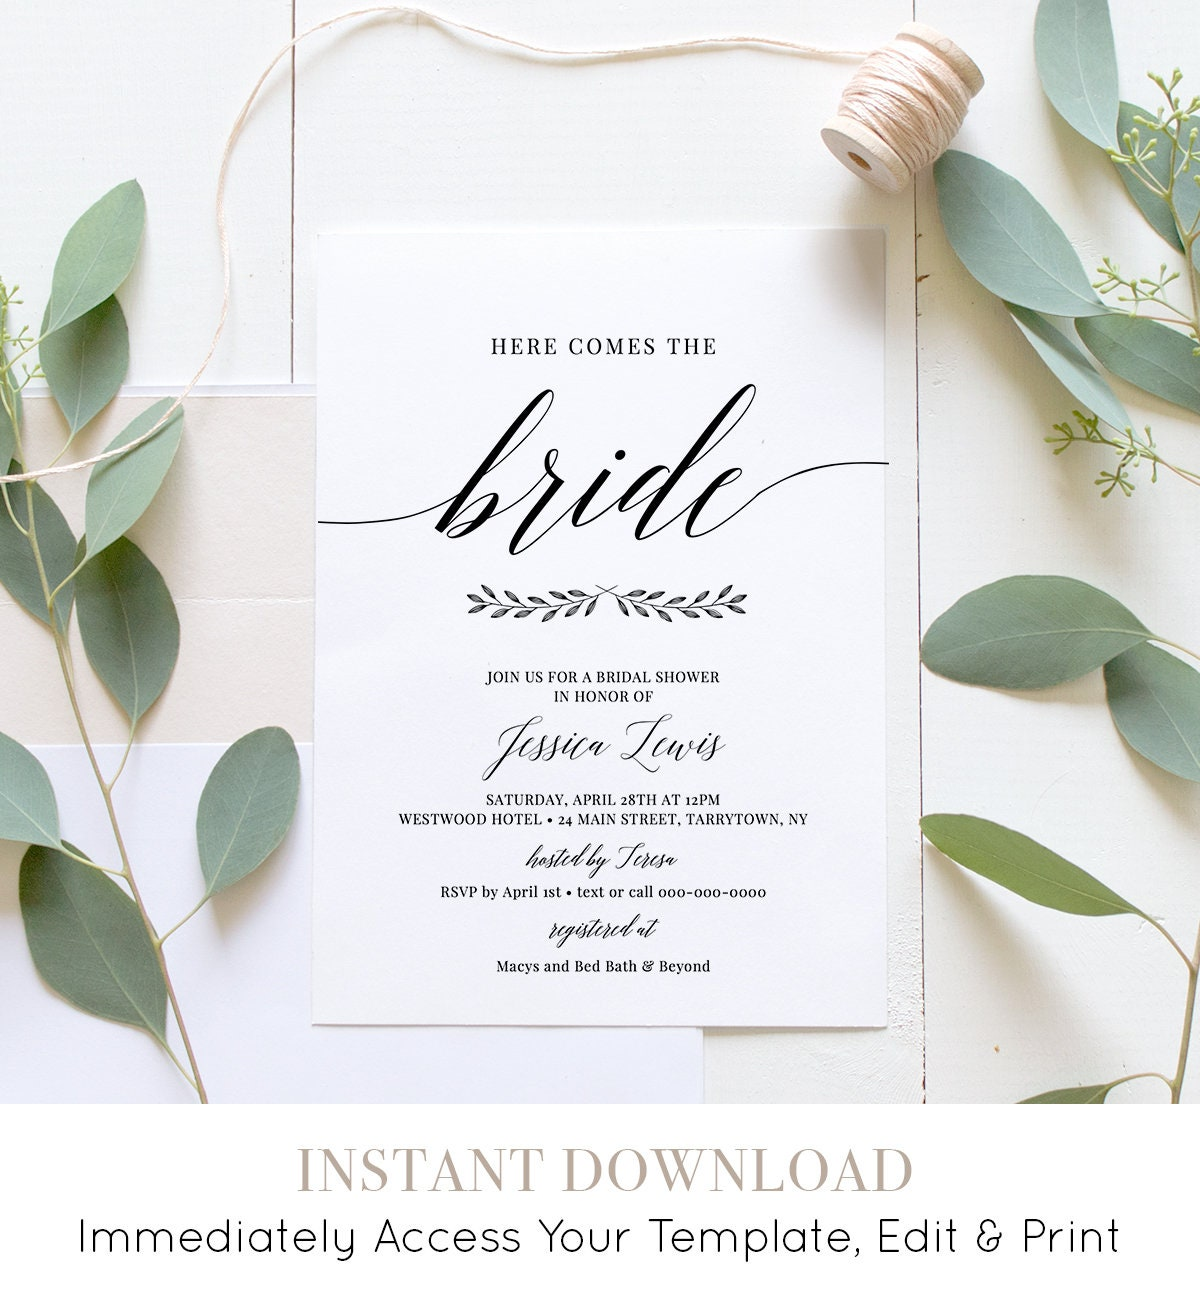 Bridal Shower Invitation Printable, Wedding Shower Invite Template, INSTANT  DOWNLOAD, 100% Editable, Simple Modern, DIY, Templett #034 121BS